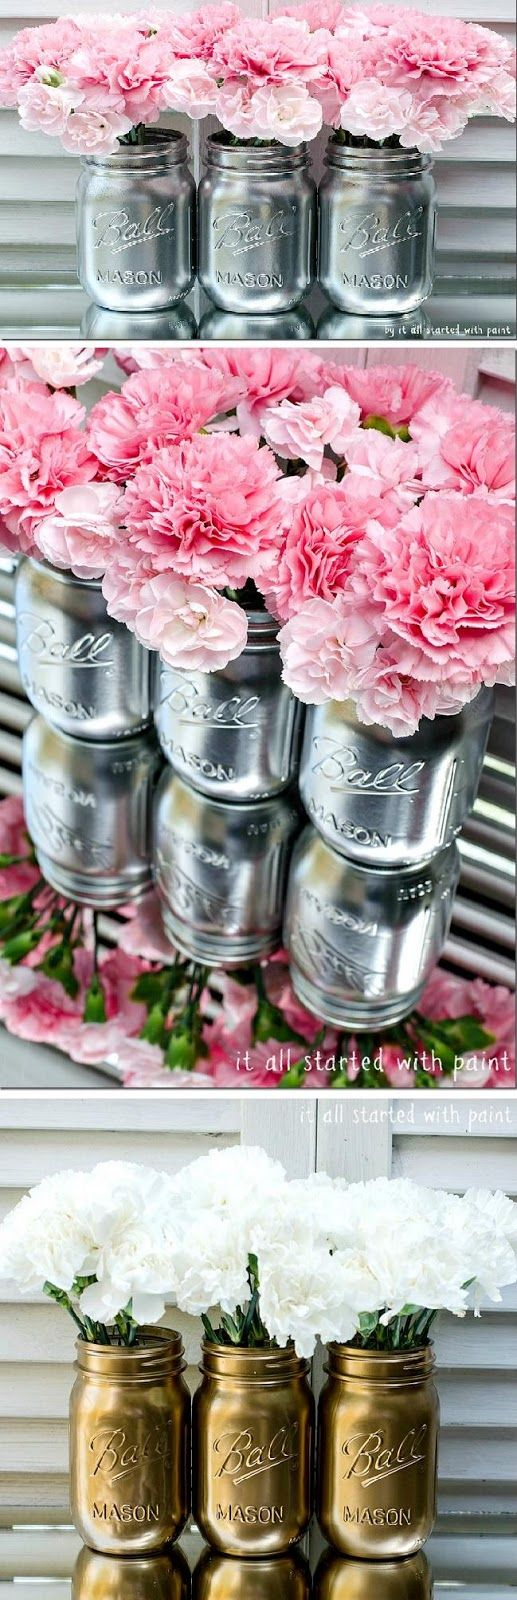 Some DIY inspiration for metallic mason jar flower holders.